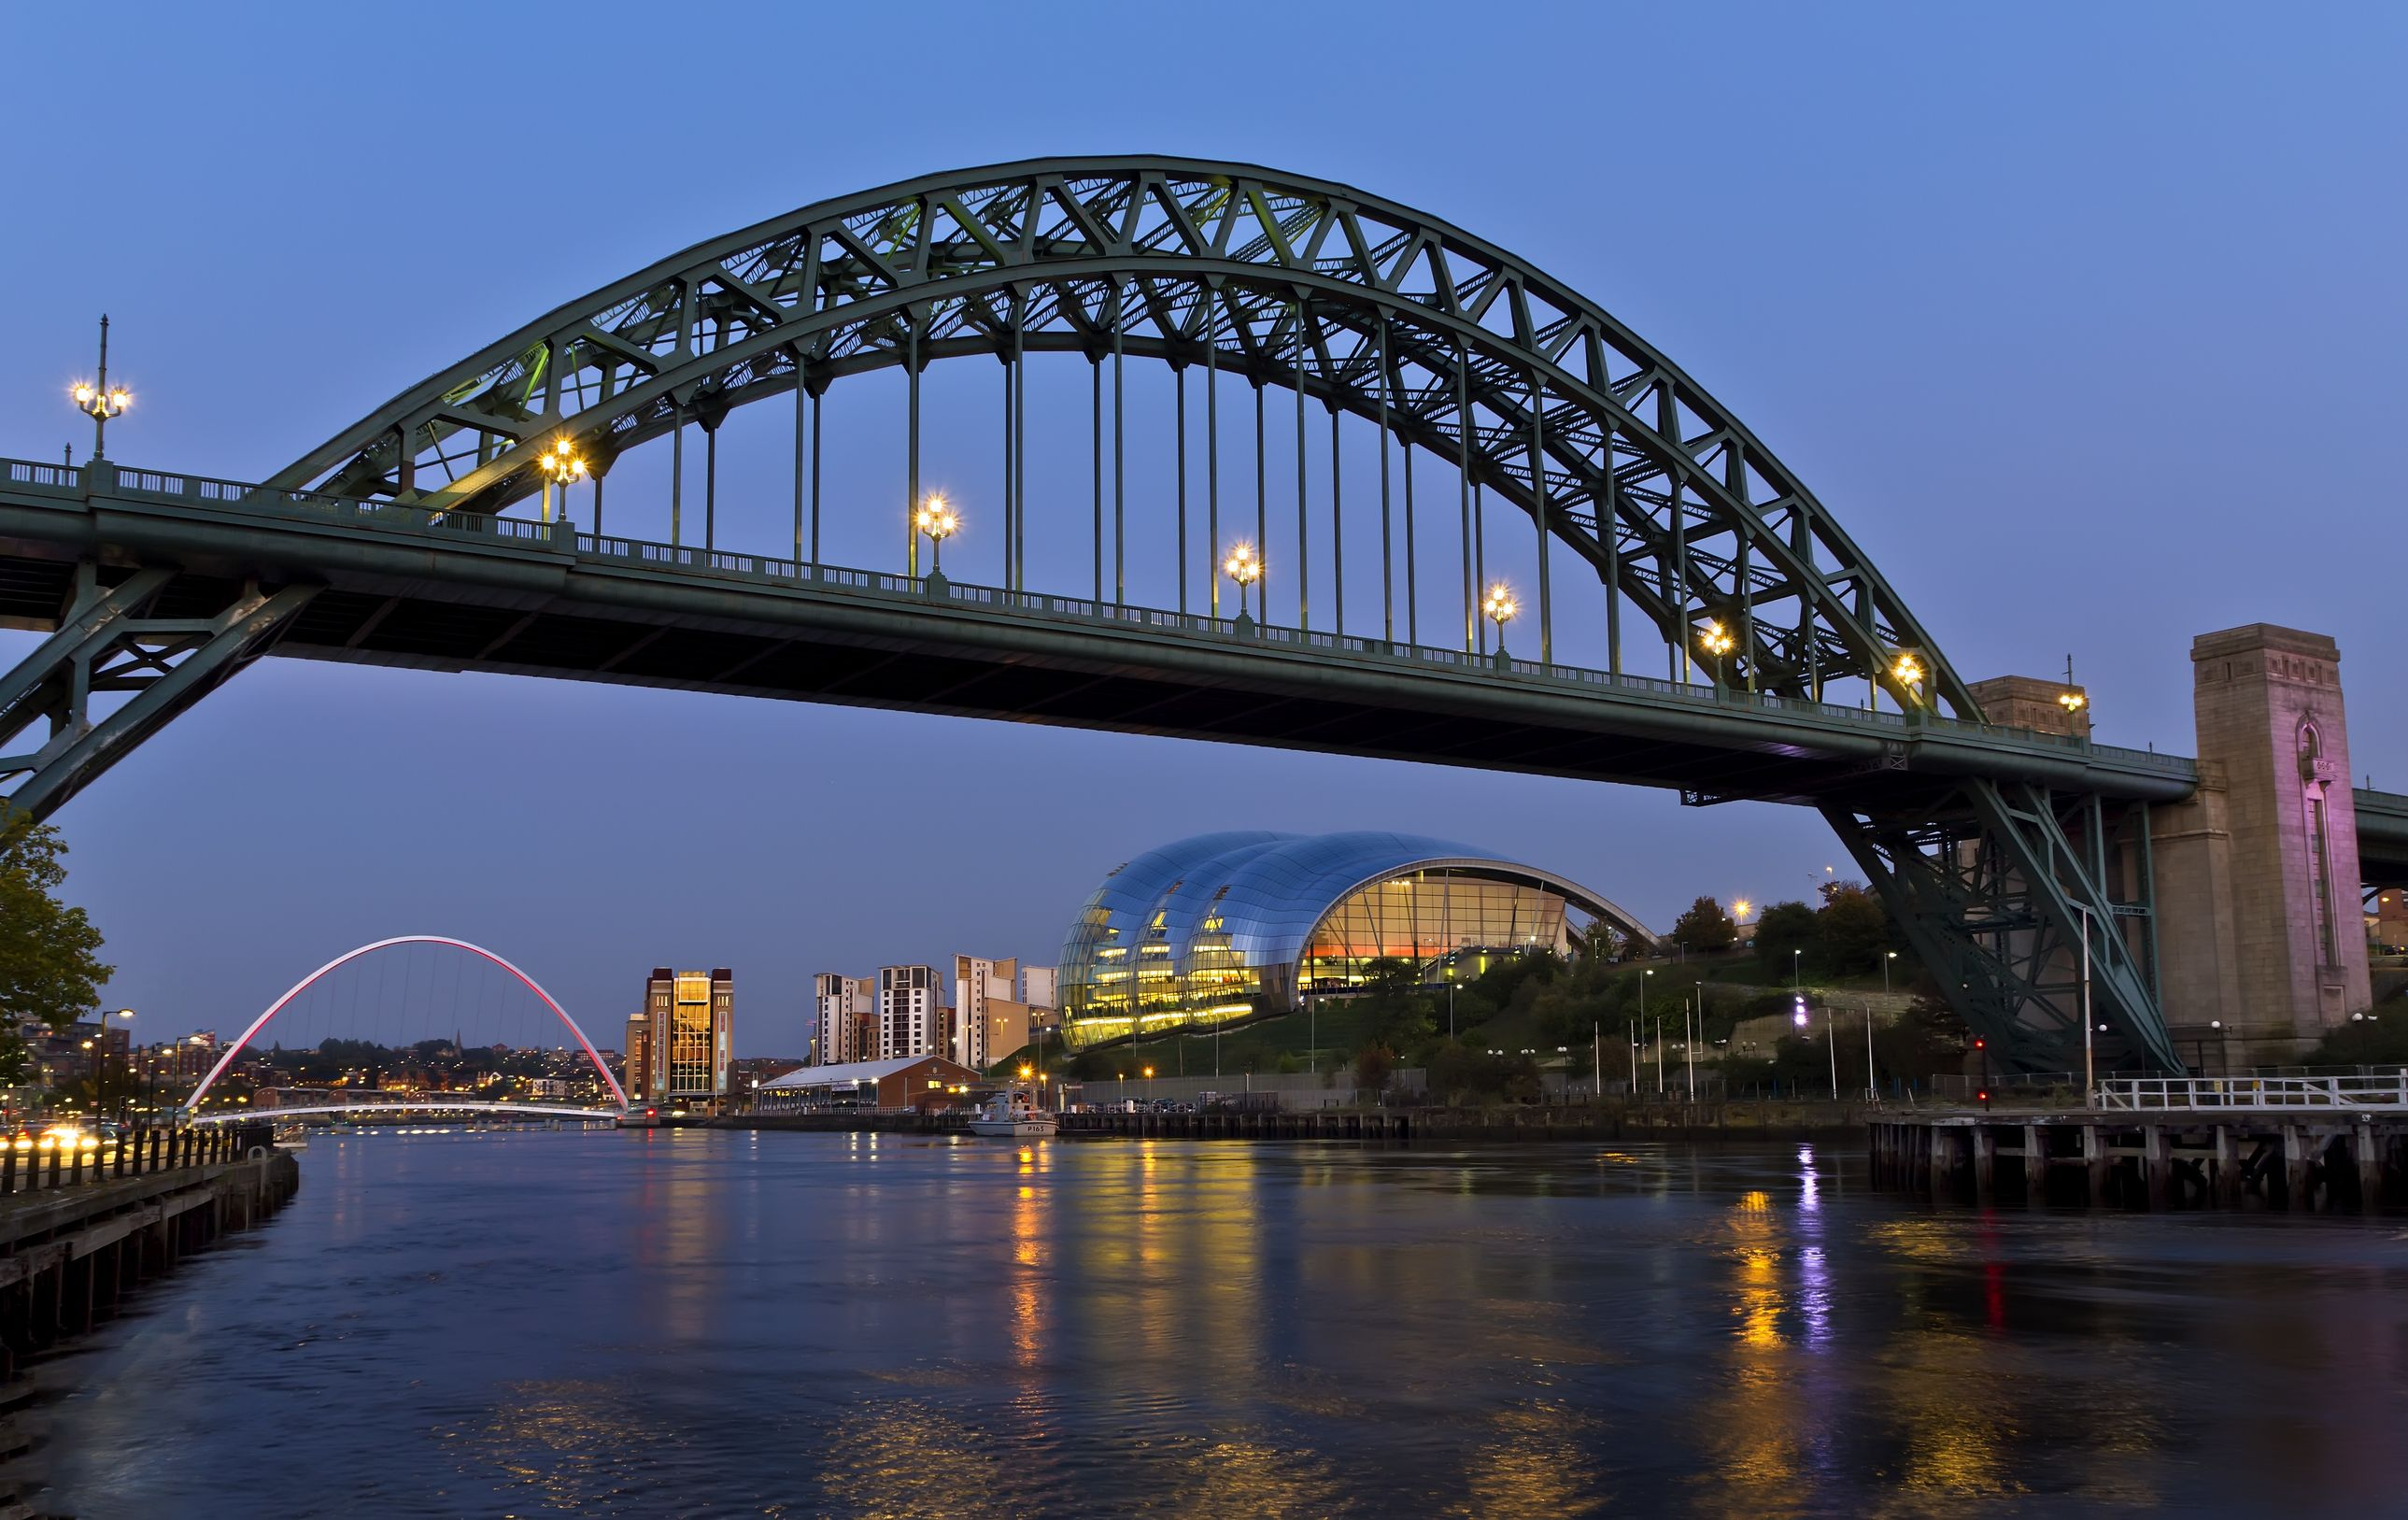 australia newcastle bridge 123rf